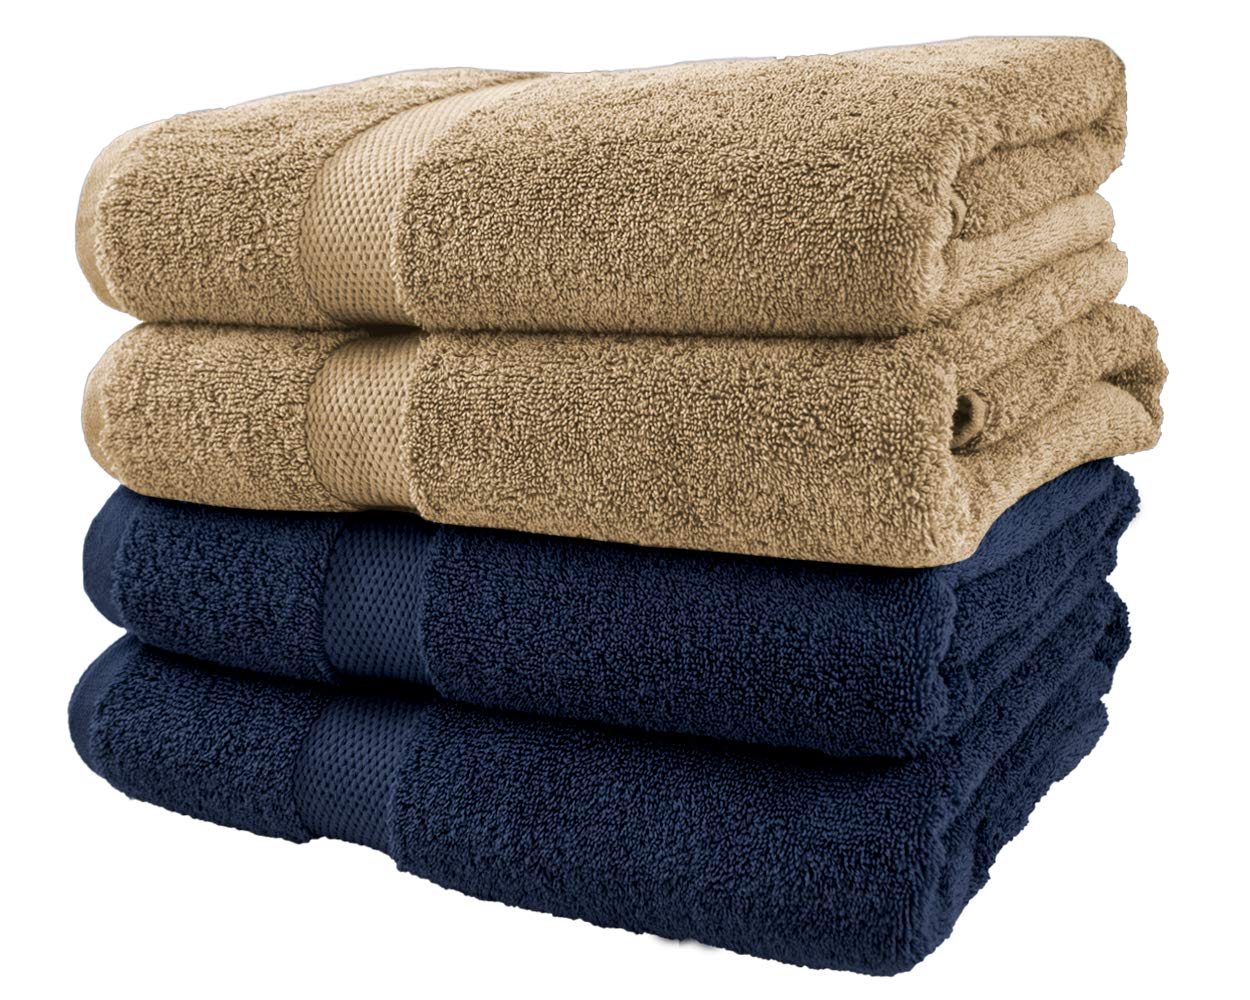 Cotton & Calm Exquisitely Plush and Soft Bath Towel Set, 2 Navy and 2 Beige Towels - 4 Large Bath Towels (27''x54'') - Spa Resort and Hotel Quality, Super Absorbent 100% Cotton Luxury Bathroom Towels by Cotton & Calm